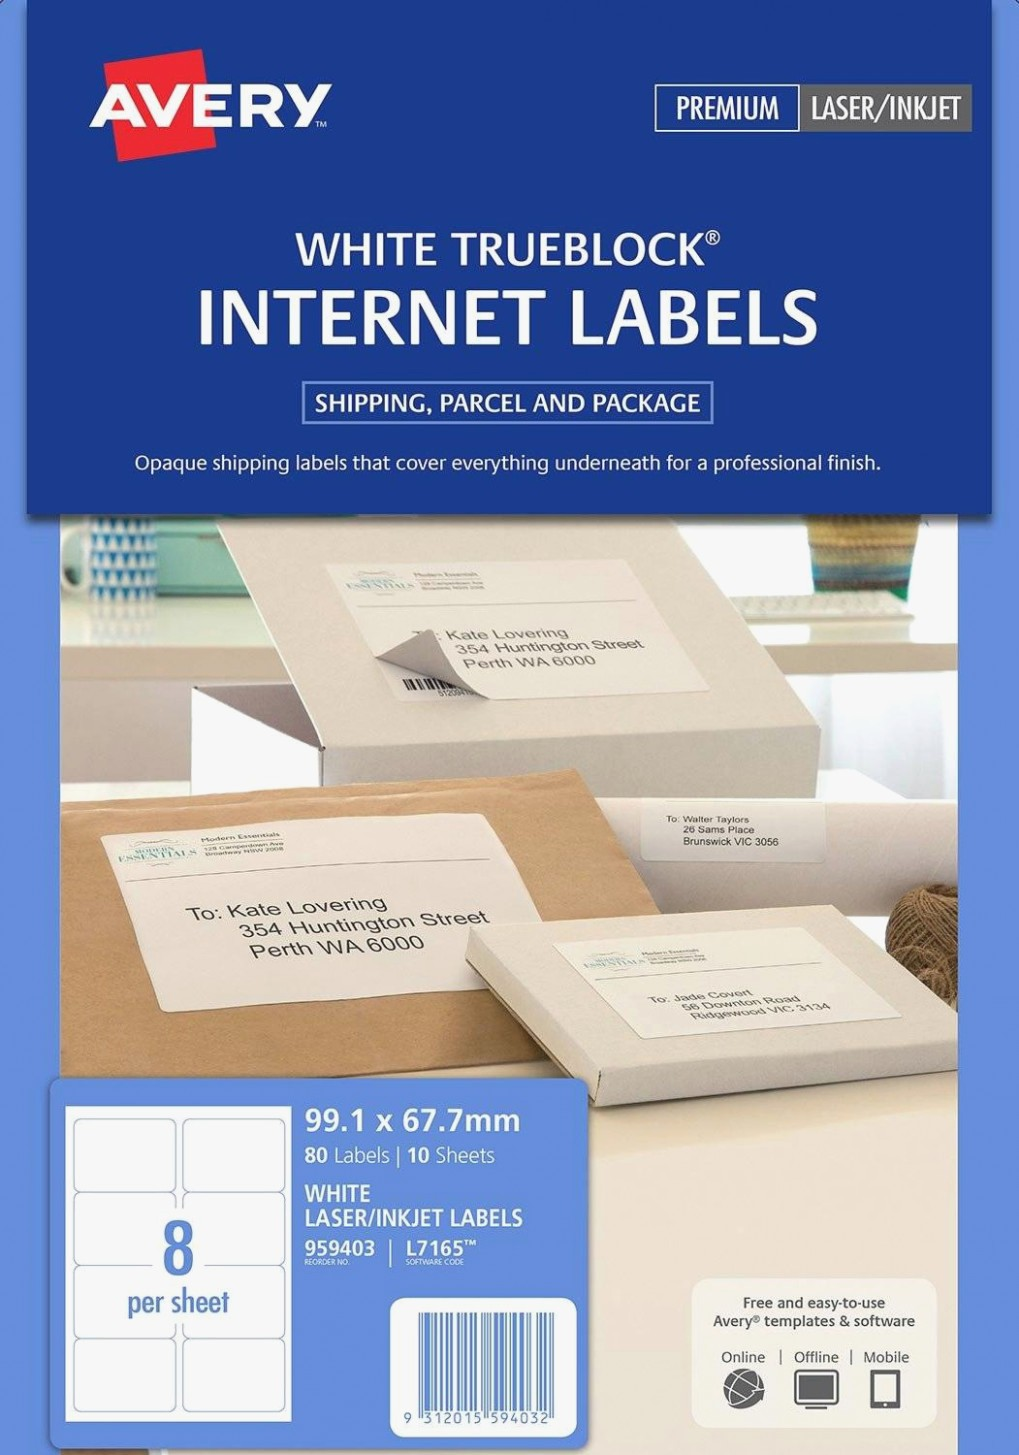 Avery Label 10 Per Page Beautiful 2x4 Label Template Pdf Lovely Avery Labels 10 Per Sheet